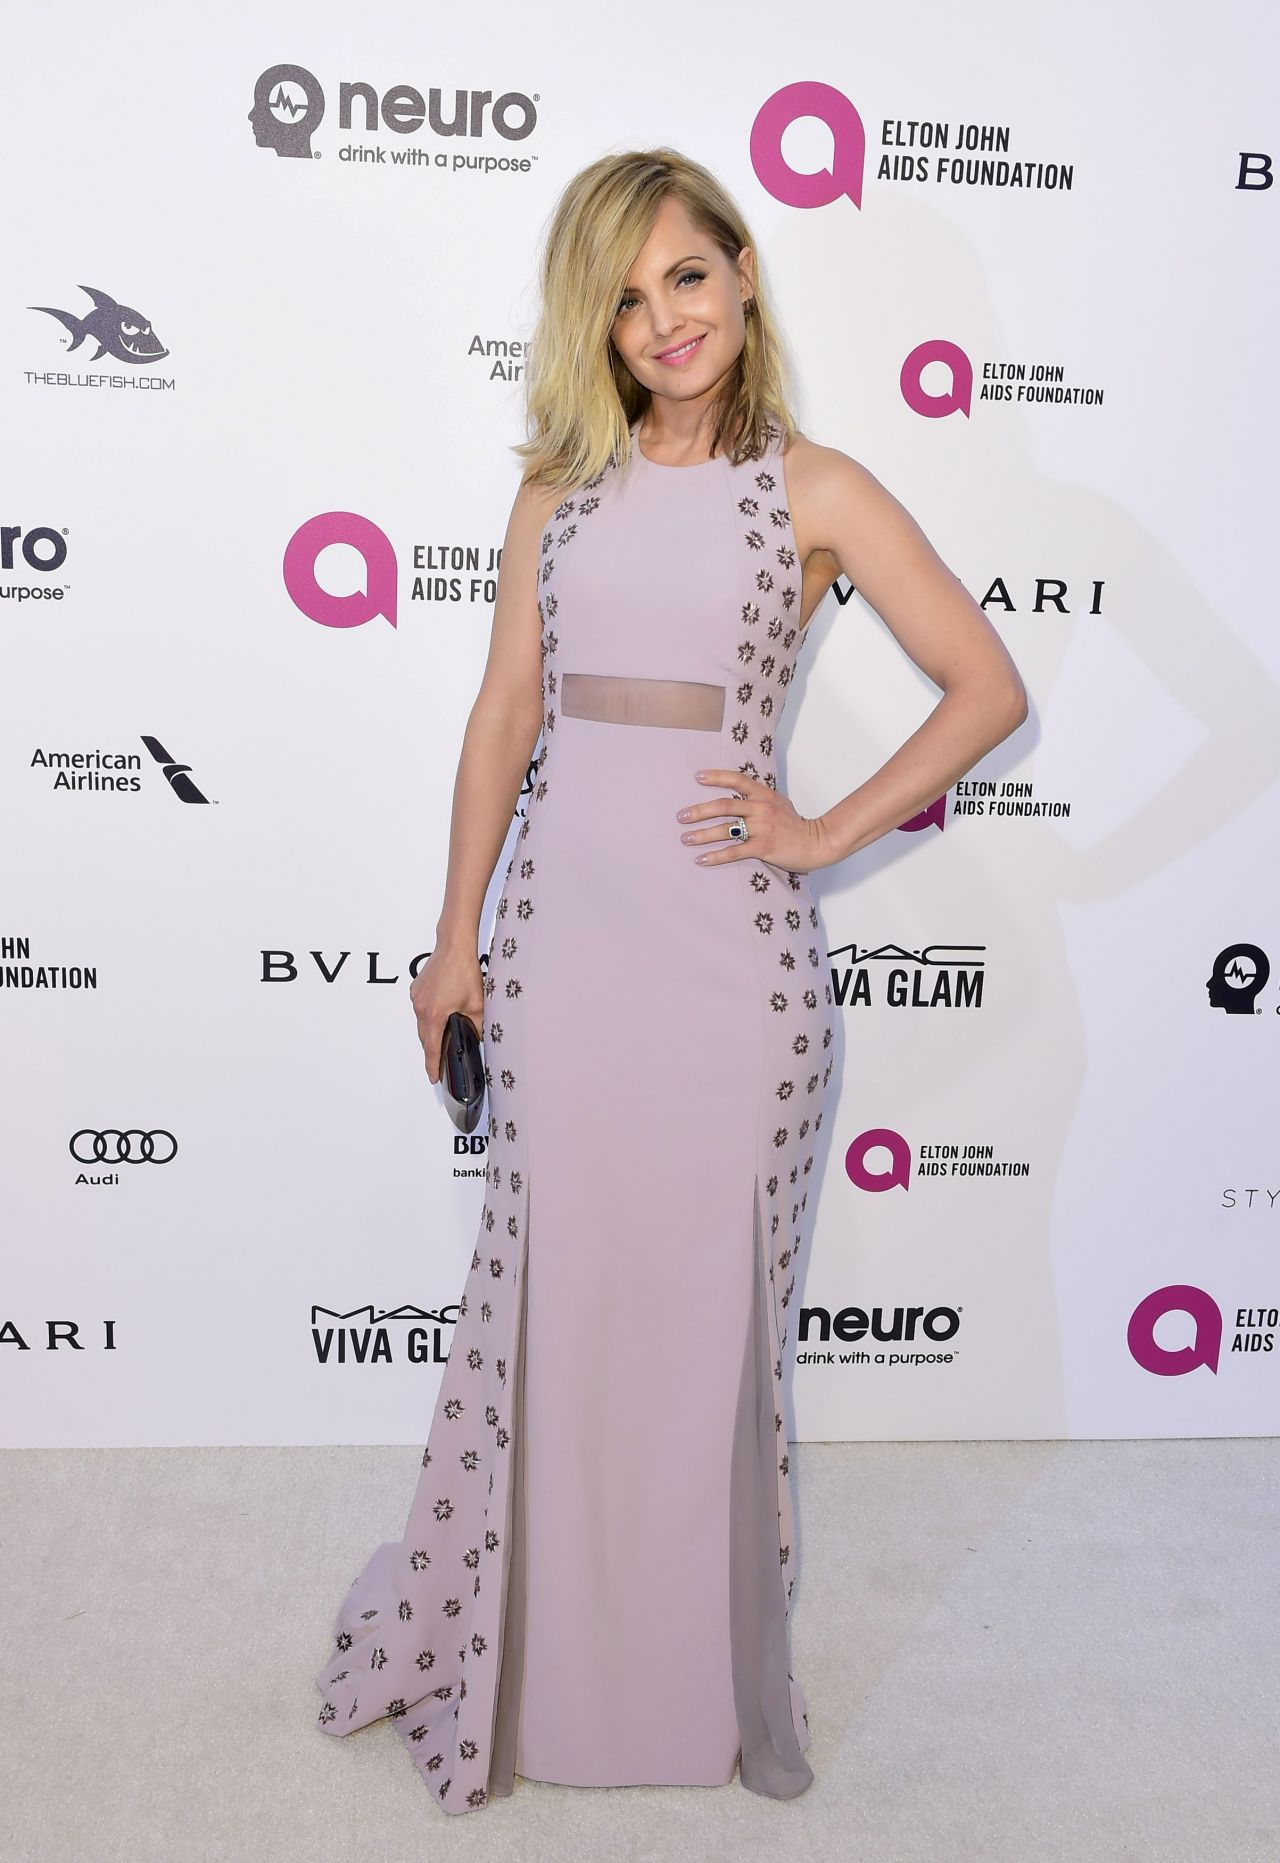 mena-suvari-elton-john-aids-foundation-academy-awards-2016-viewing-party-in-west-hollywood-ca-1